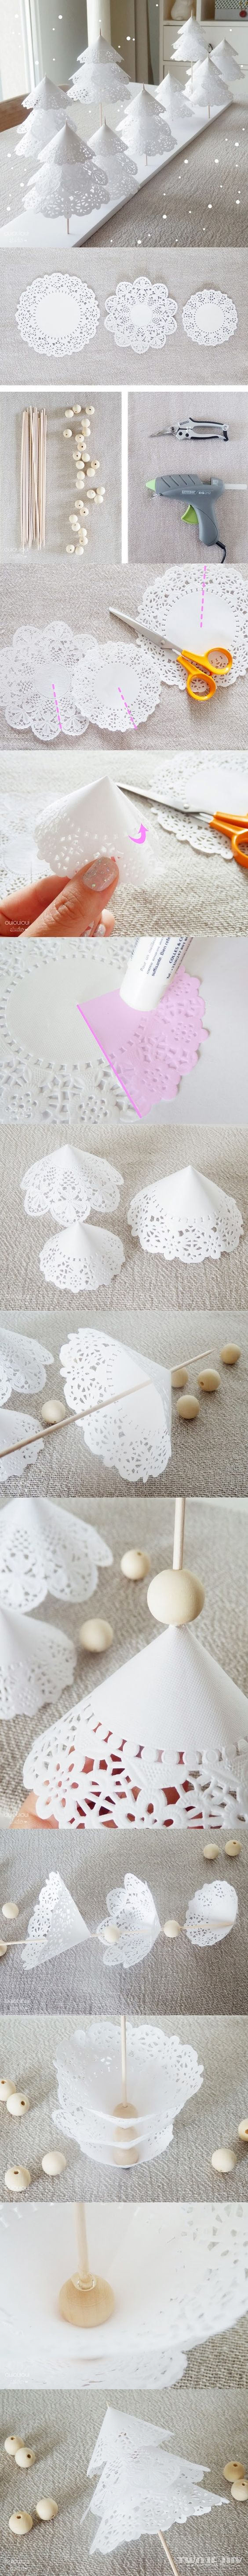 Christmas Craft Ideas With Paper Doilies : Diy christmas tree with paper doilies